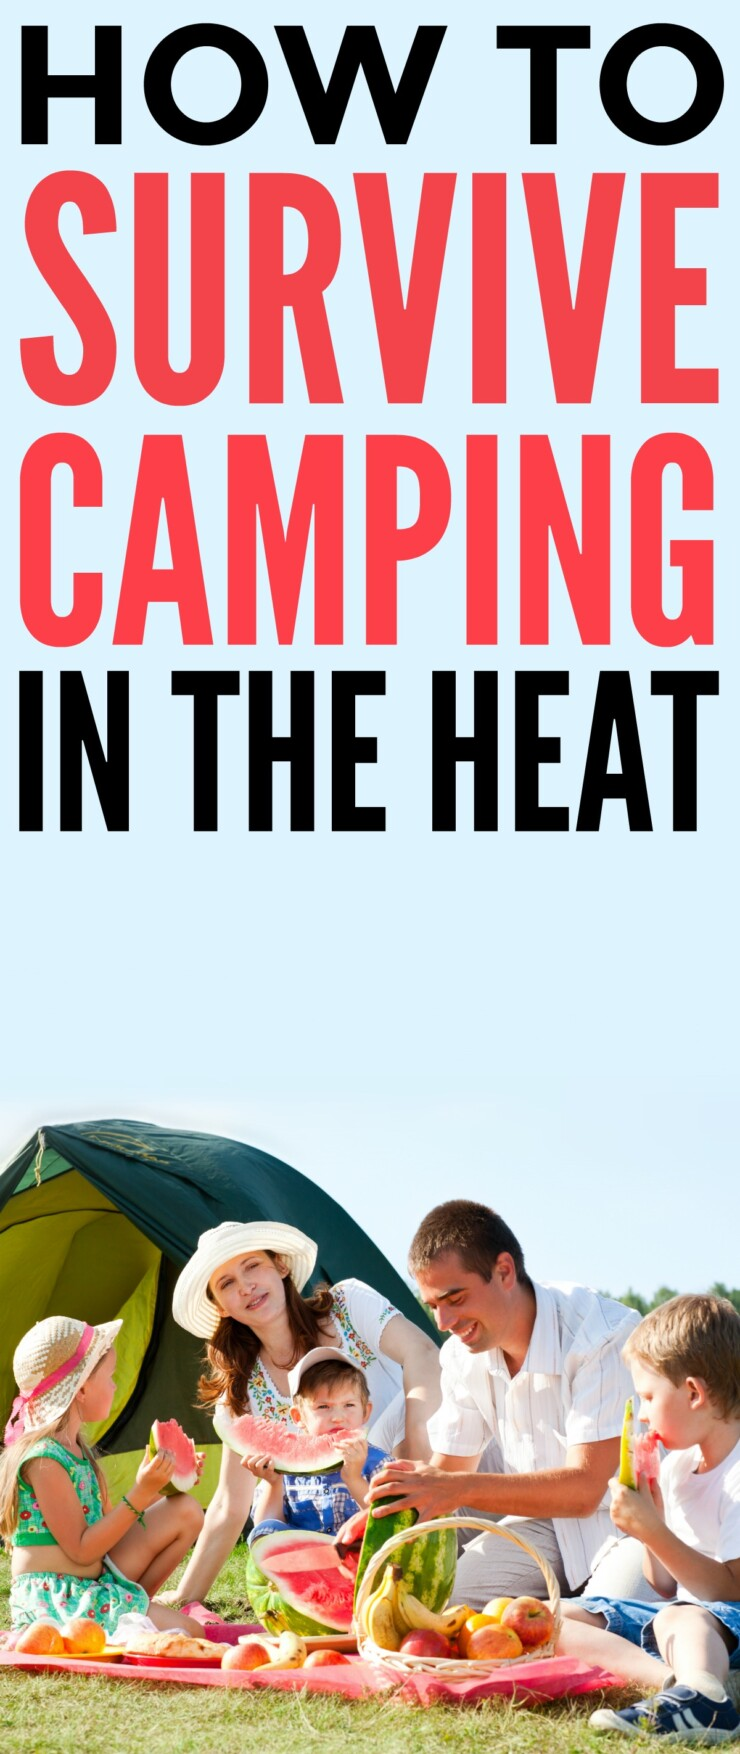 Thankfully there are ways to survive camping in the heat, allowing for an excellent night's rest in preparation for many adventures in the great outdoors.